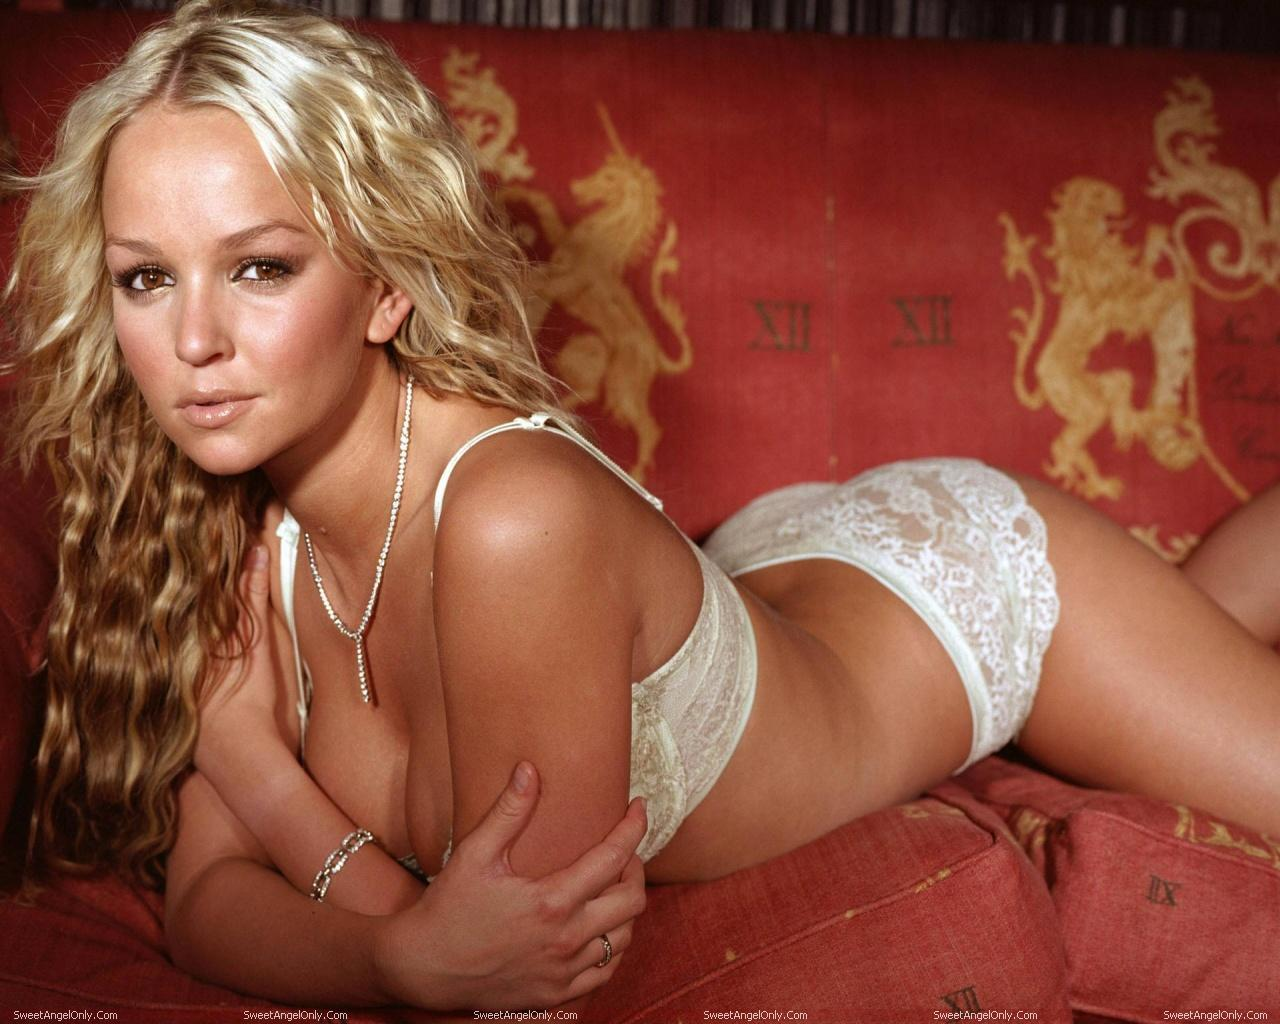 http://4.bp.blogspot.com/-qrSRBKRUJpA/TWjZ_N1Z-xI/AAAAAAAAEyM/1MpaufXayk0/s1600/actress_jennifer_ellison_hot_wallpaper_03.jpg